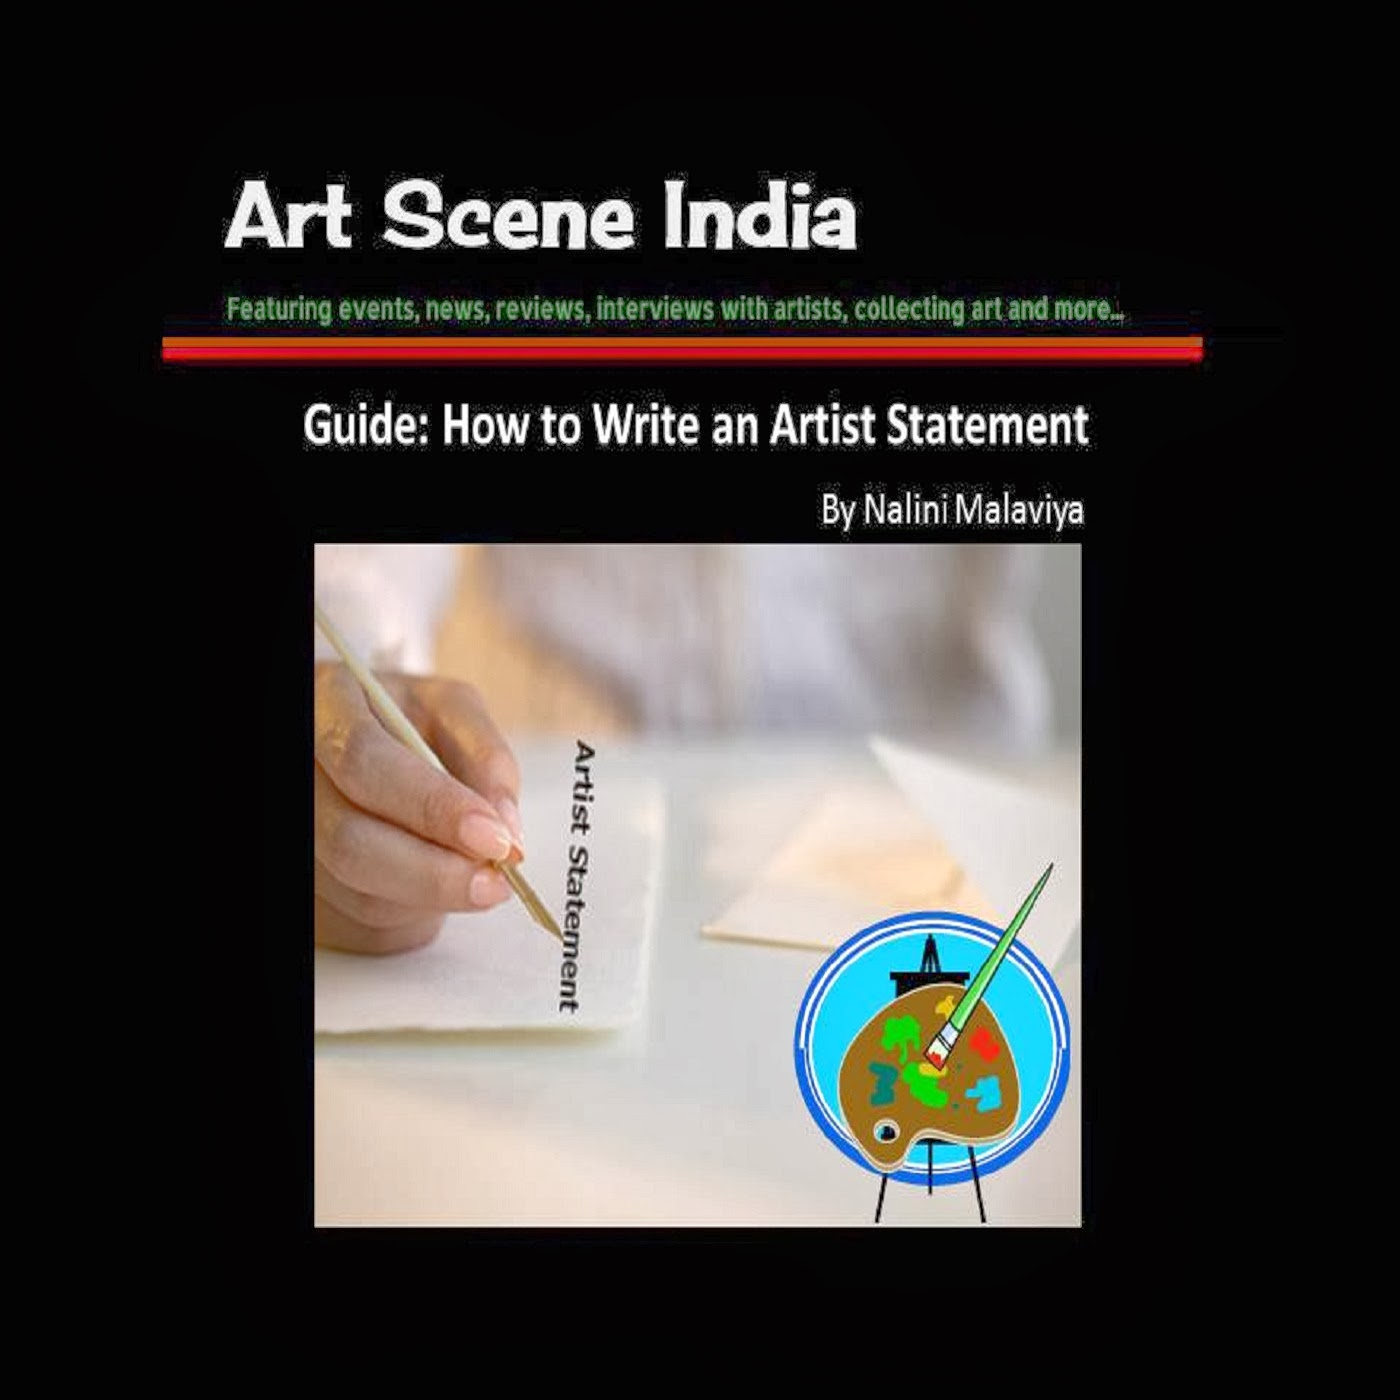 Guide: How to Write an Artist Statement, Art Scene India